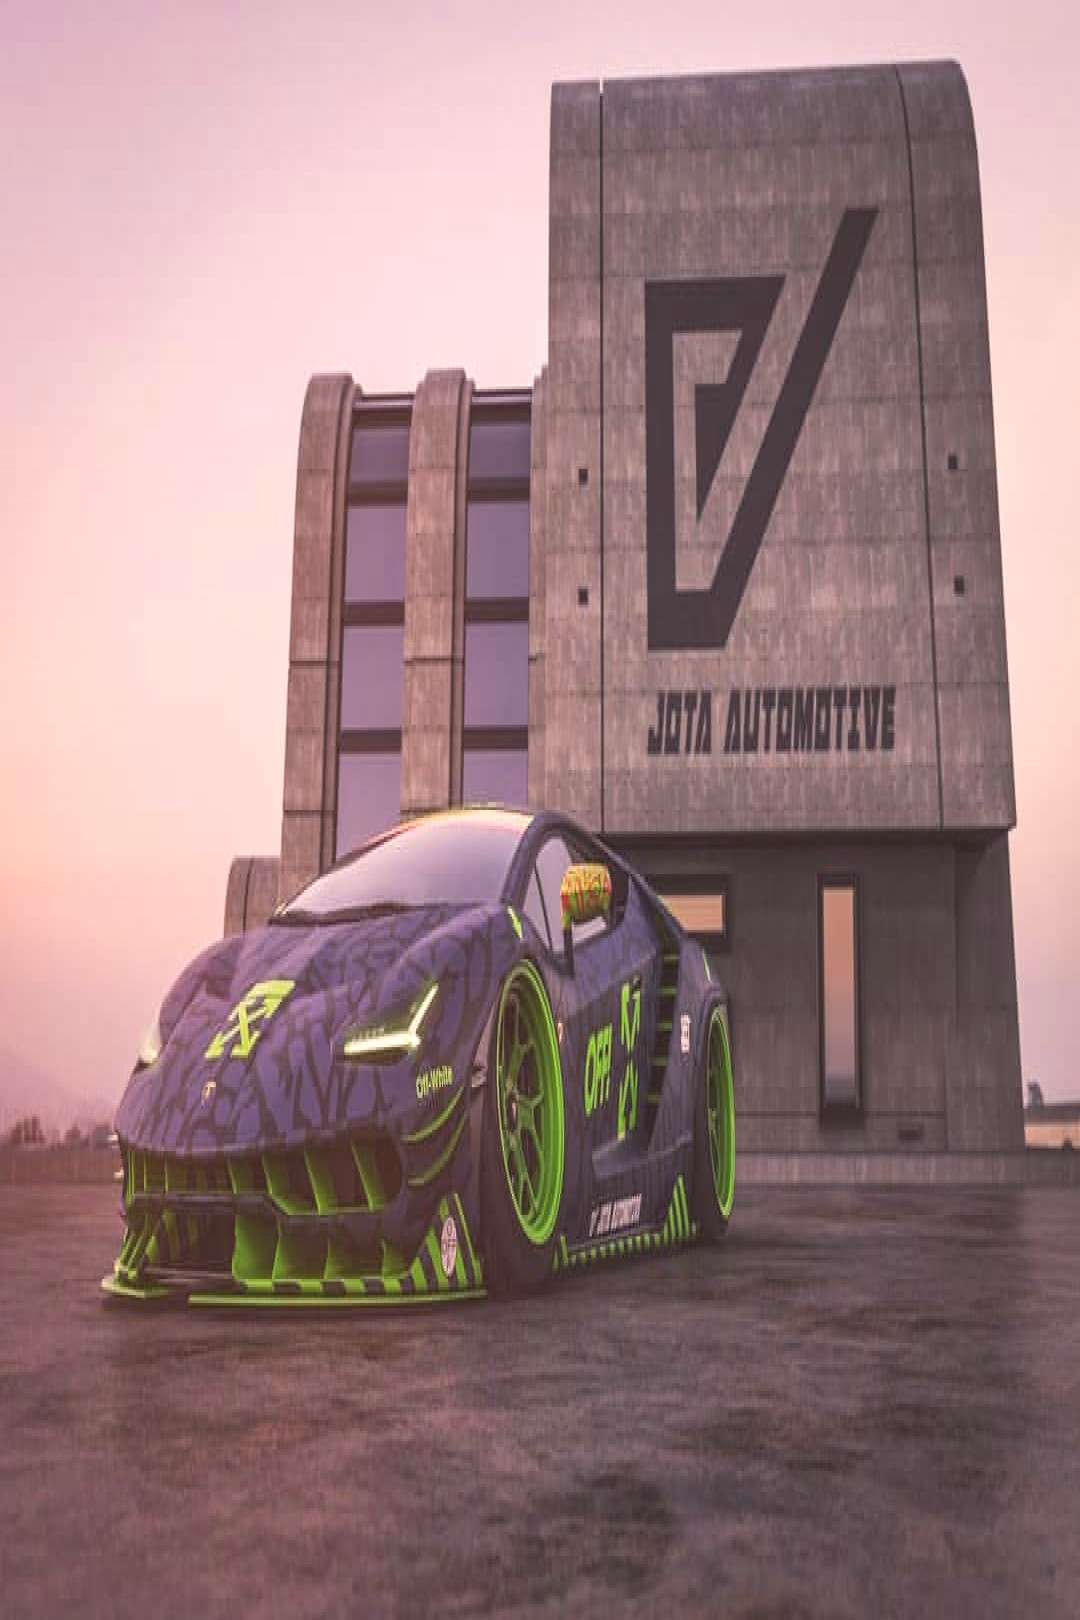 Performantedrifter on April 20 2020 and outdoor